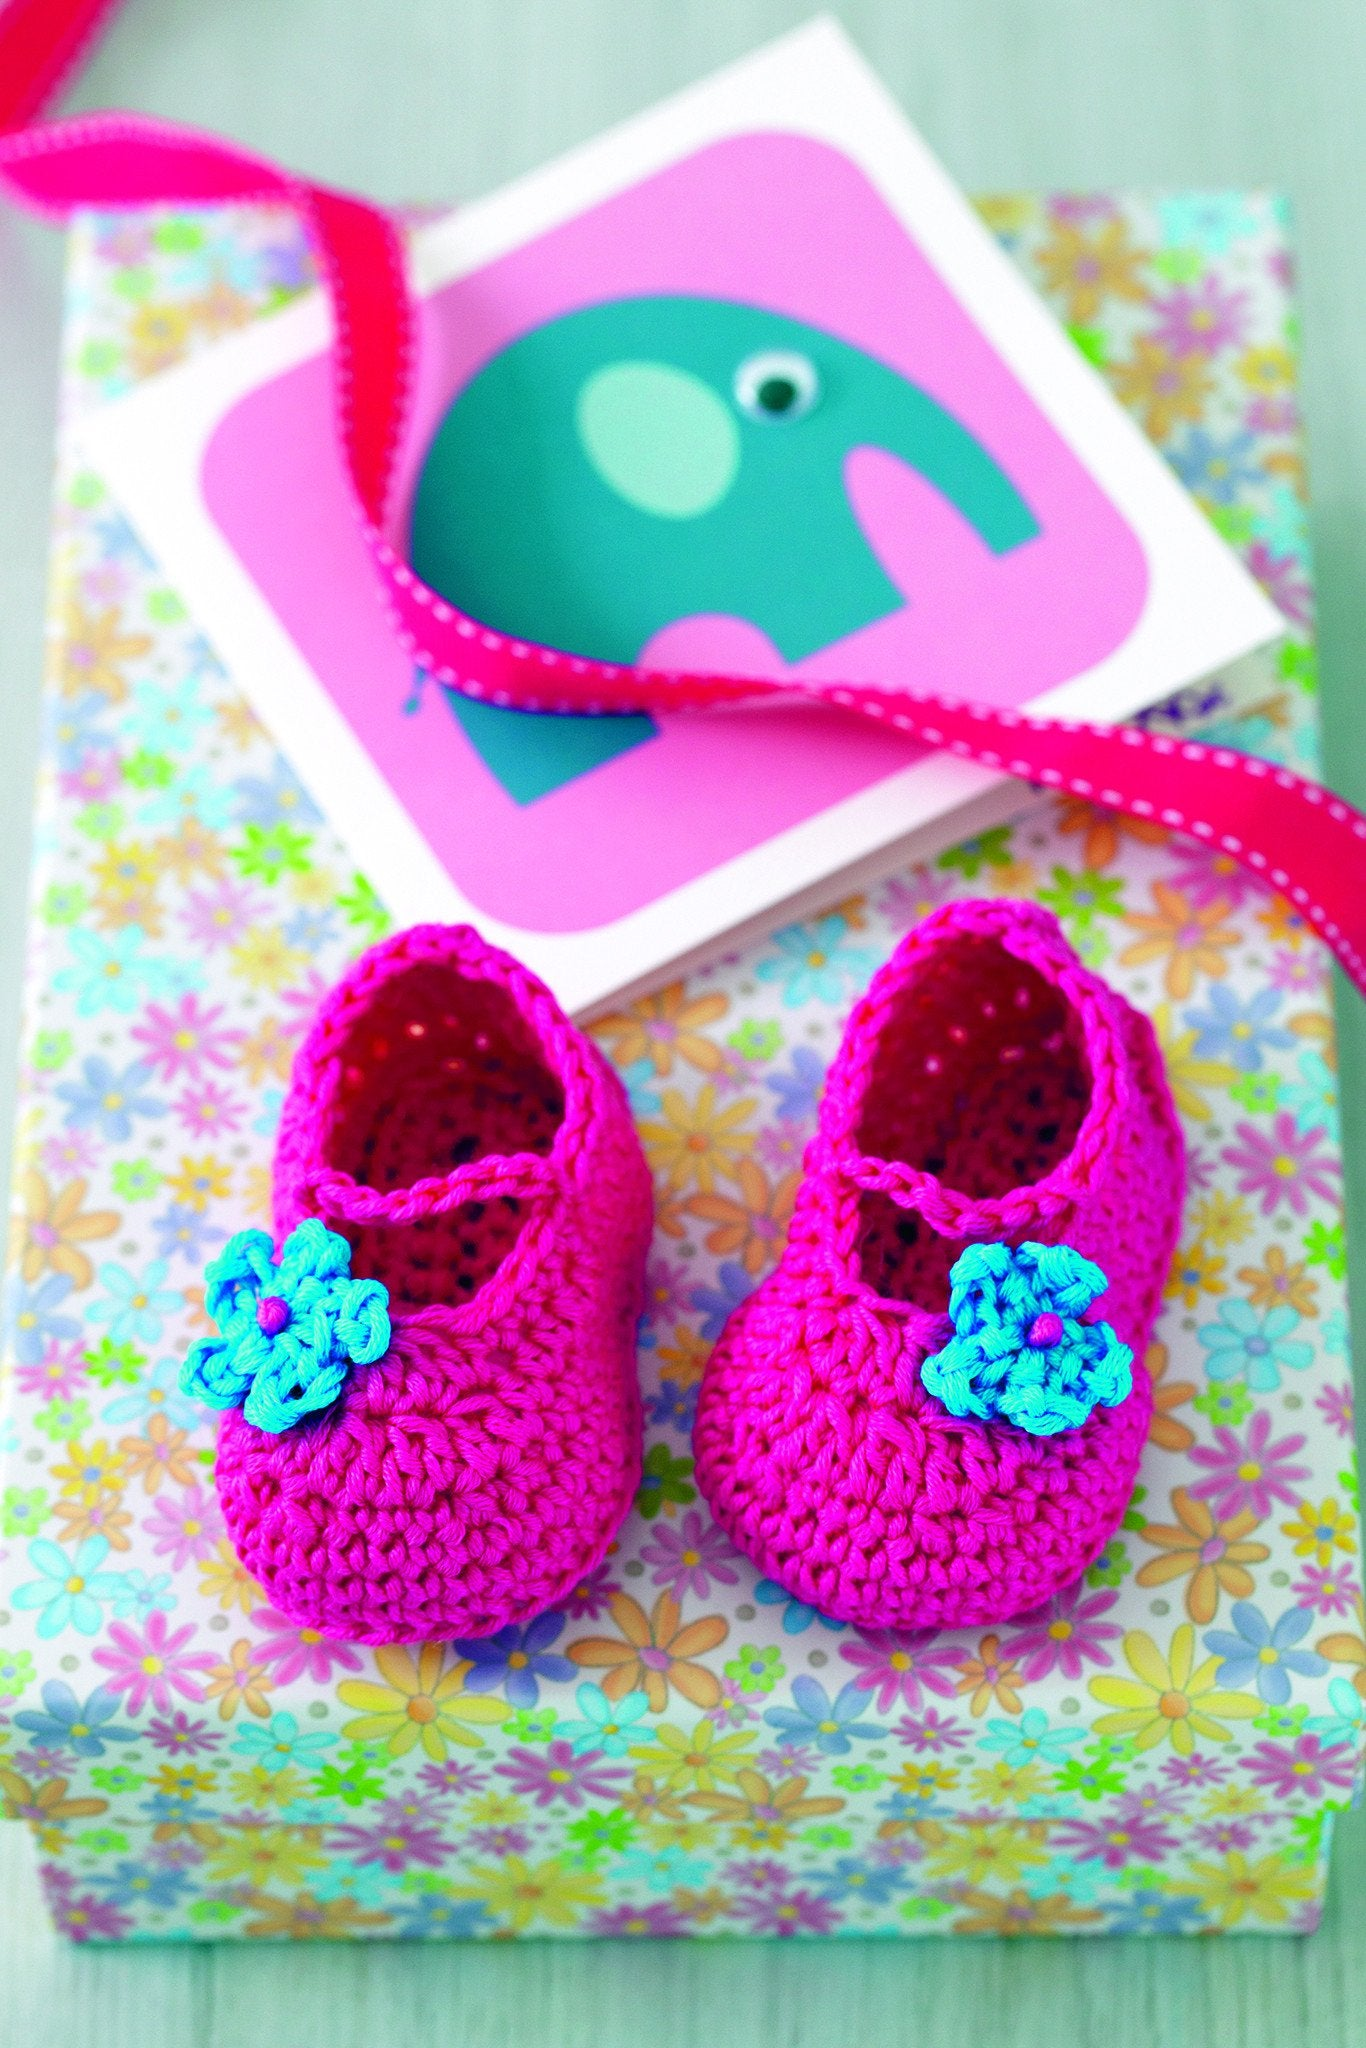 Baby Shoes With Flower Crochet Pattern – The Knitting Network